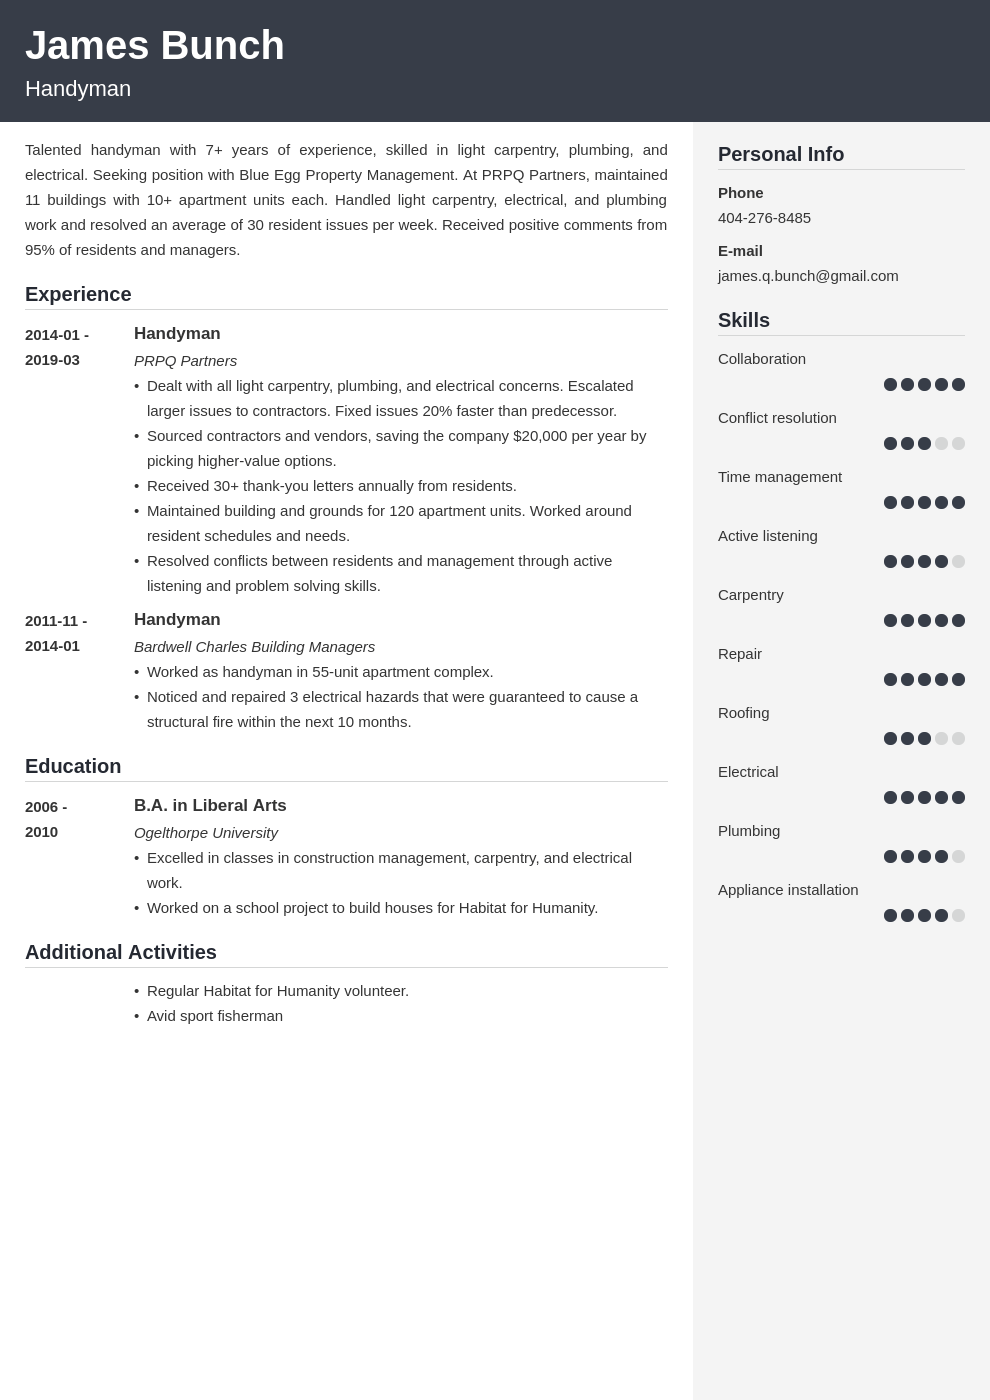 handyman resume example template cubic